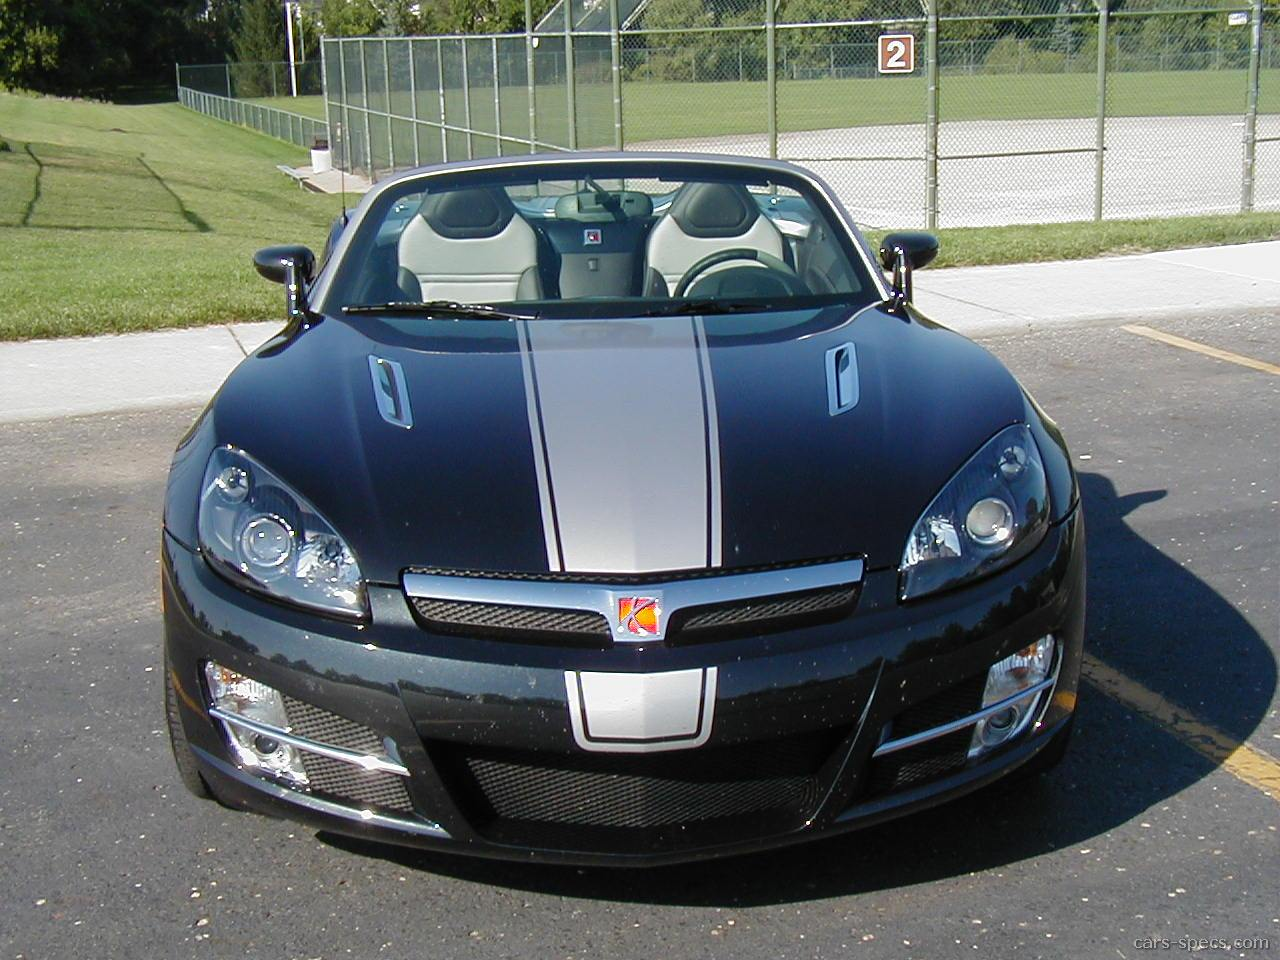 2008 saturn sky red line carbon flash se specifications pictures rh cars specs com 2008 saturn sky redline repair manual 2008 saturn sky repair manual